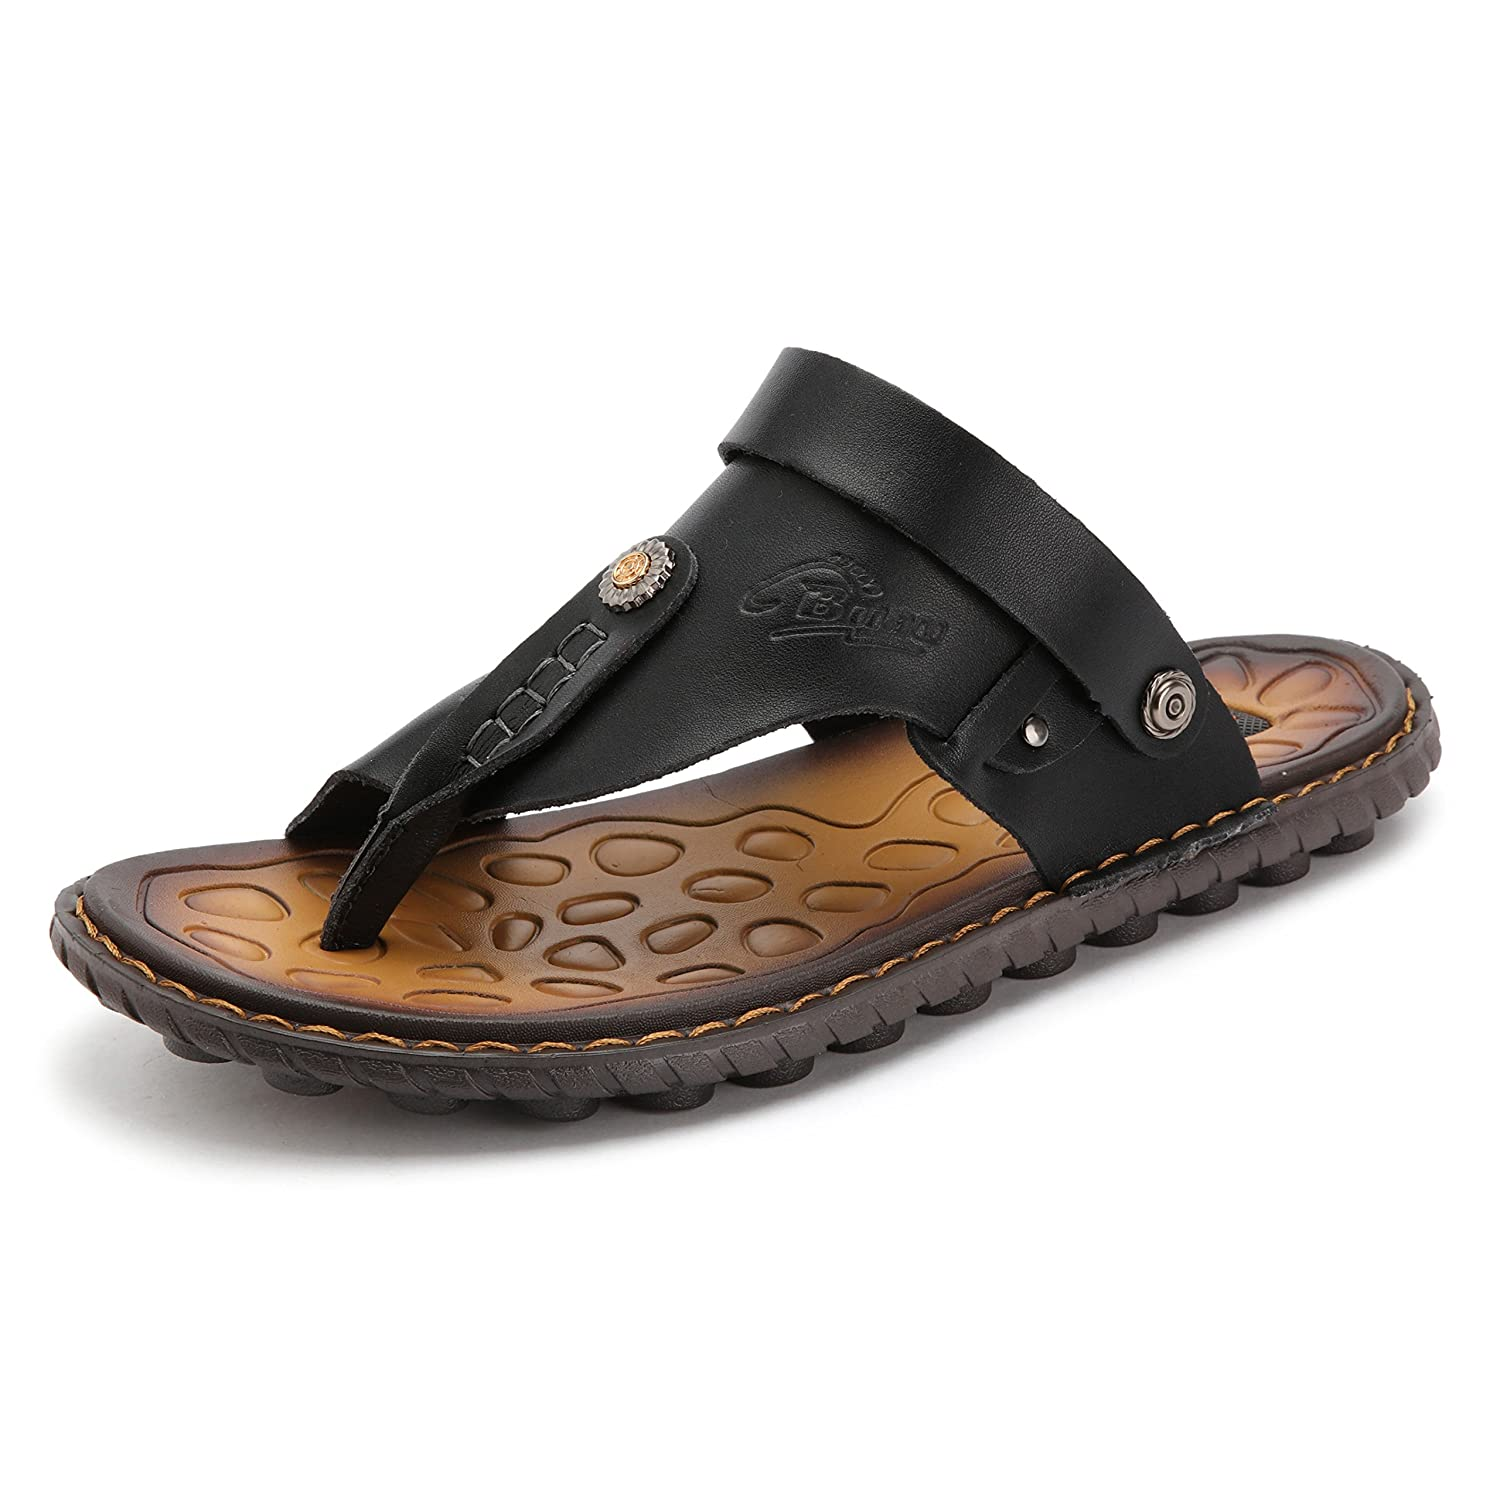 16feb5a10cc4 Amazon.com  OHCHSH Mens Sandals Flip Flops for Men Shoes with Toe Ring Casual  Summer Leather Black  Shoes